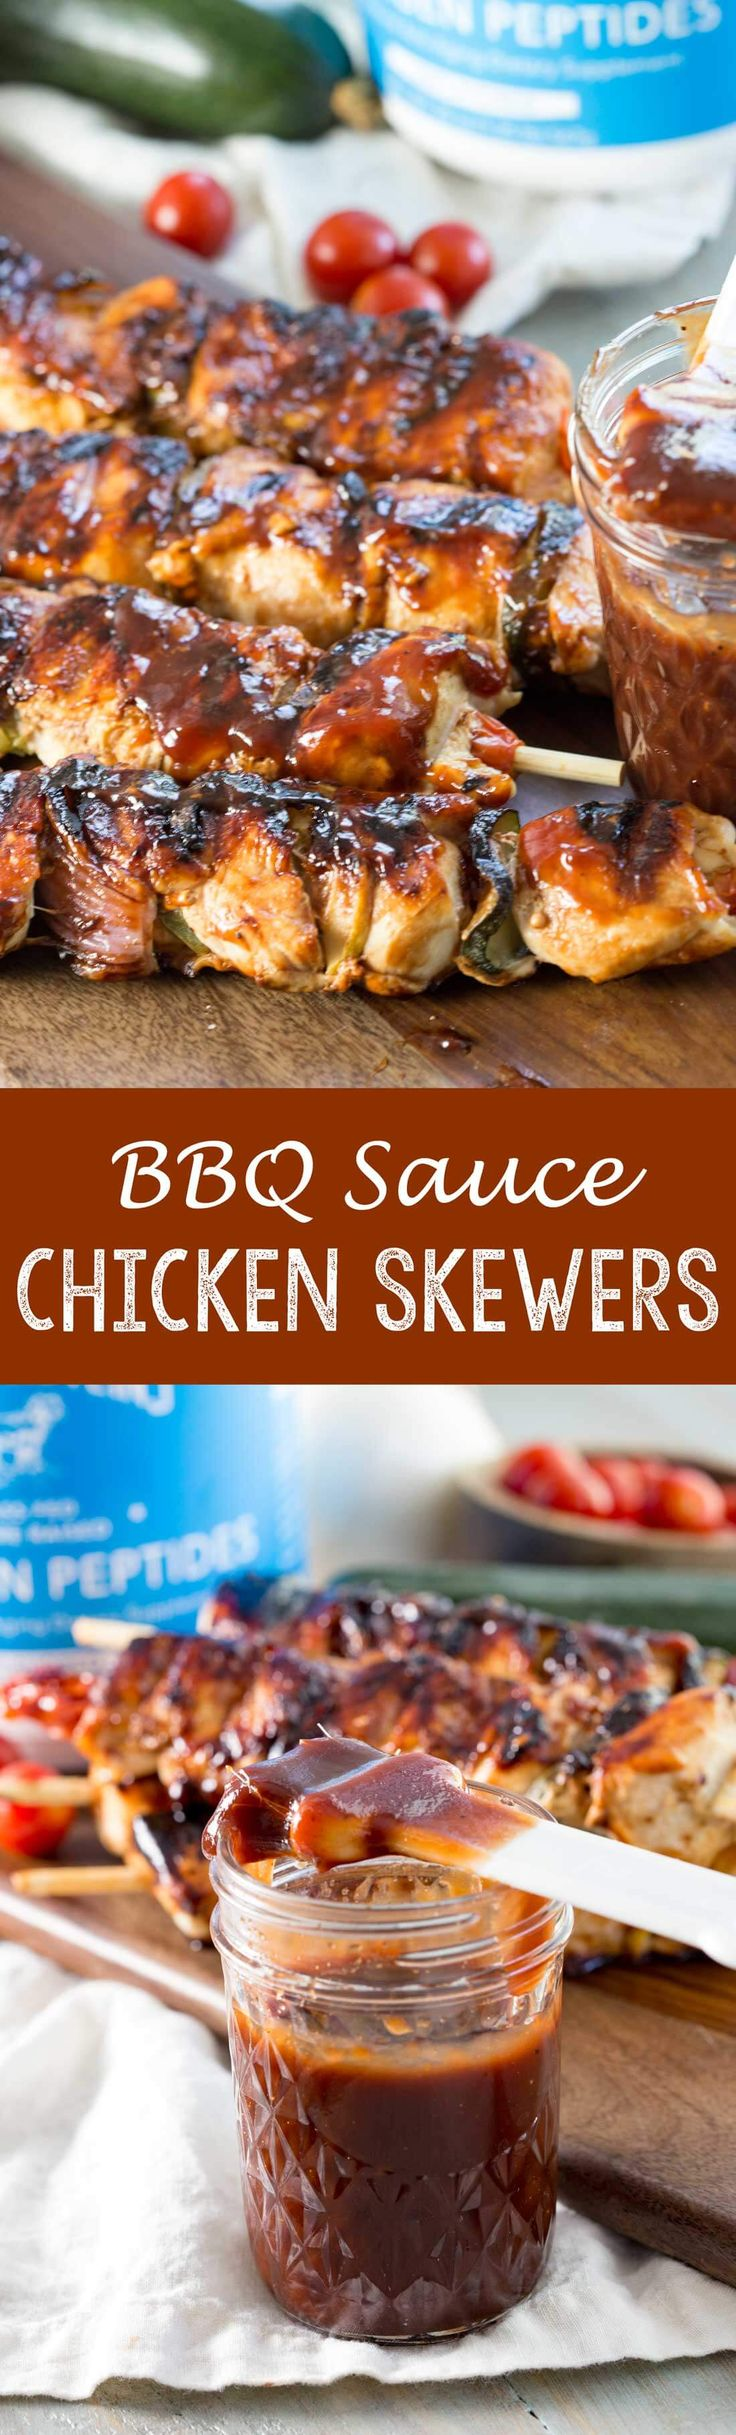 How long do i grill chicken skewers - Bbq Chicken Skewers Homemade Protein Bbq Sauce